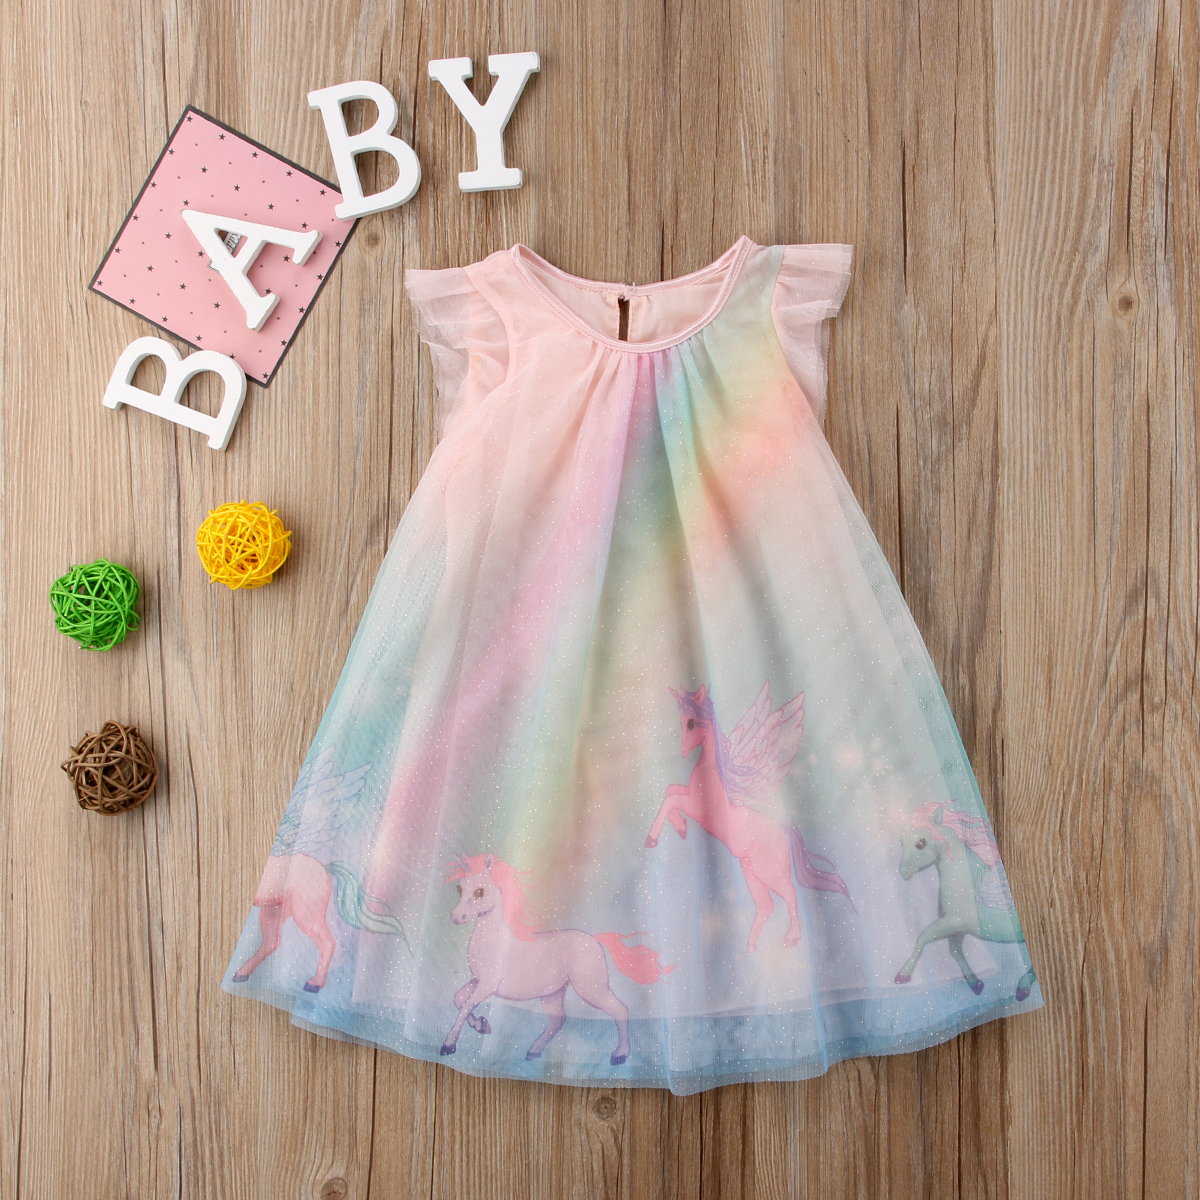 5399e660fe7b5 Details about Toddle Baby Girls Fly Sleeve Dress Unicorn Party A Line Sundress  Tutu Clothes